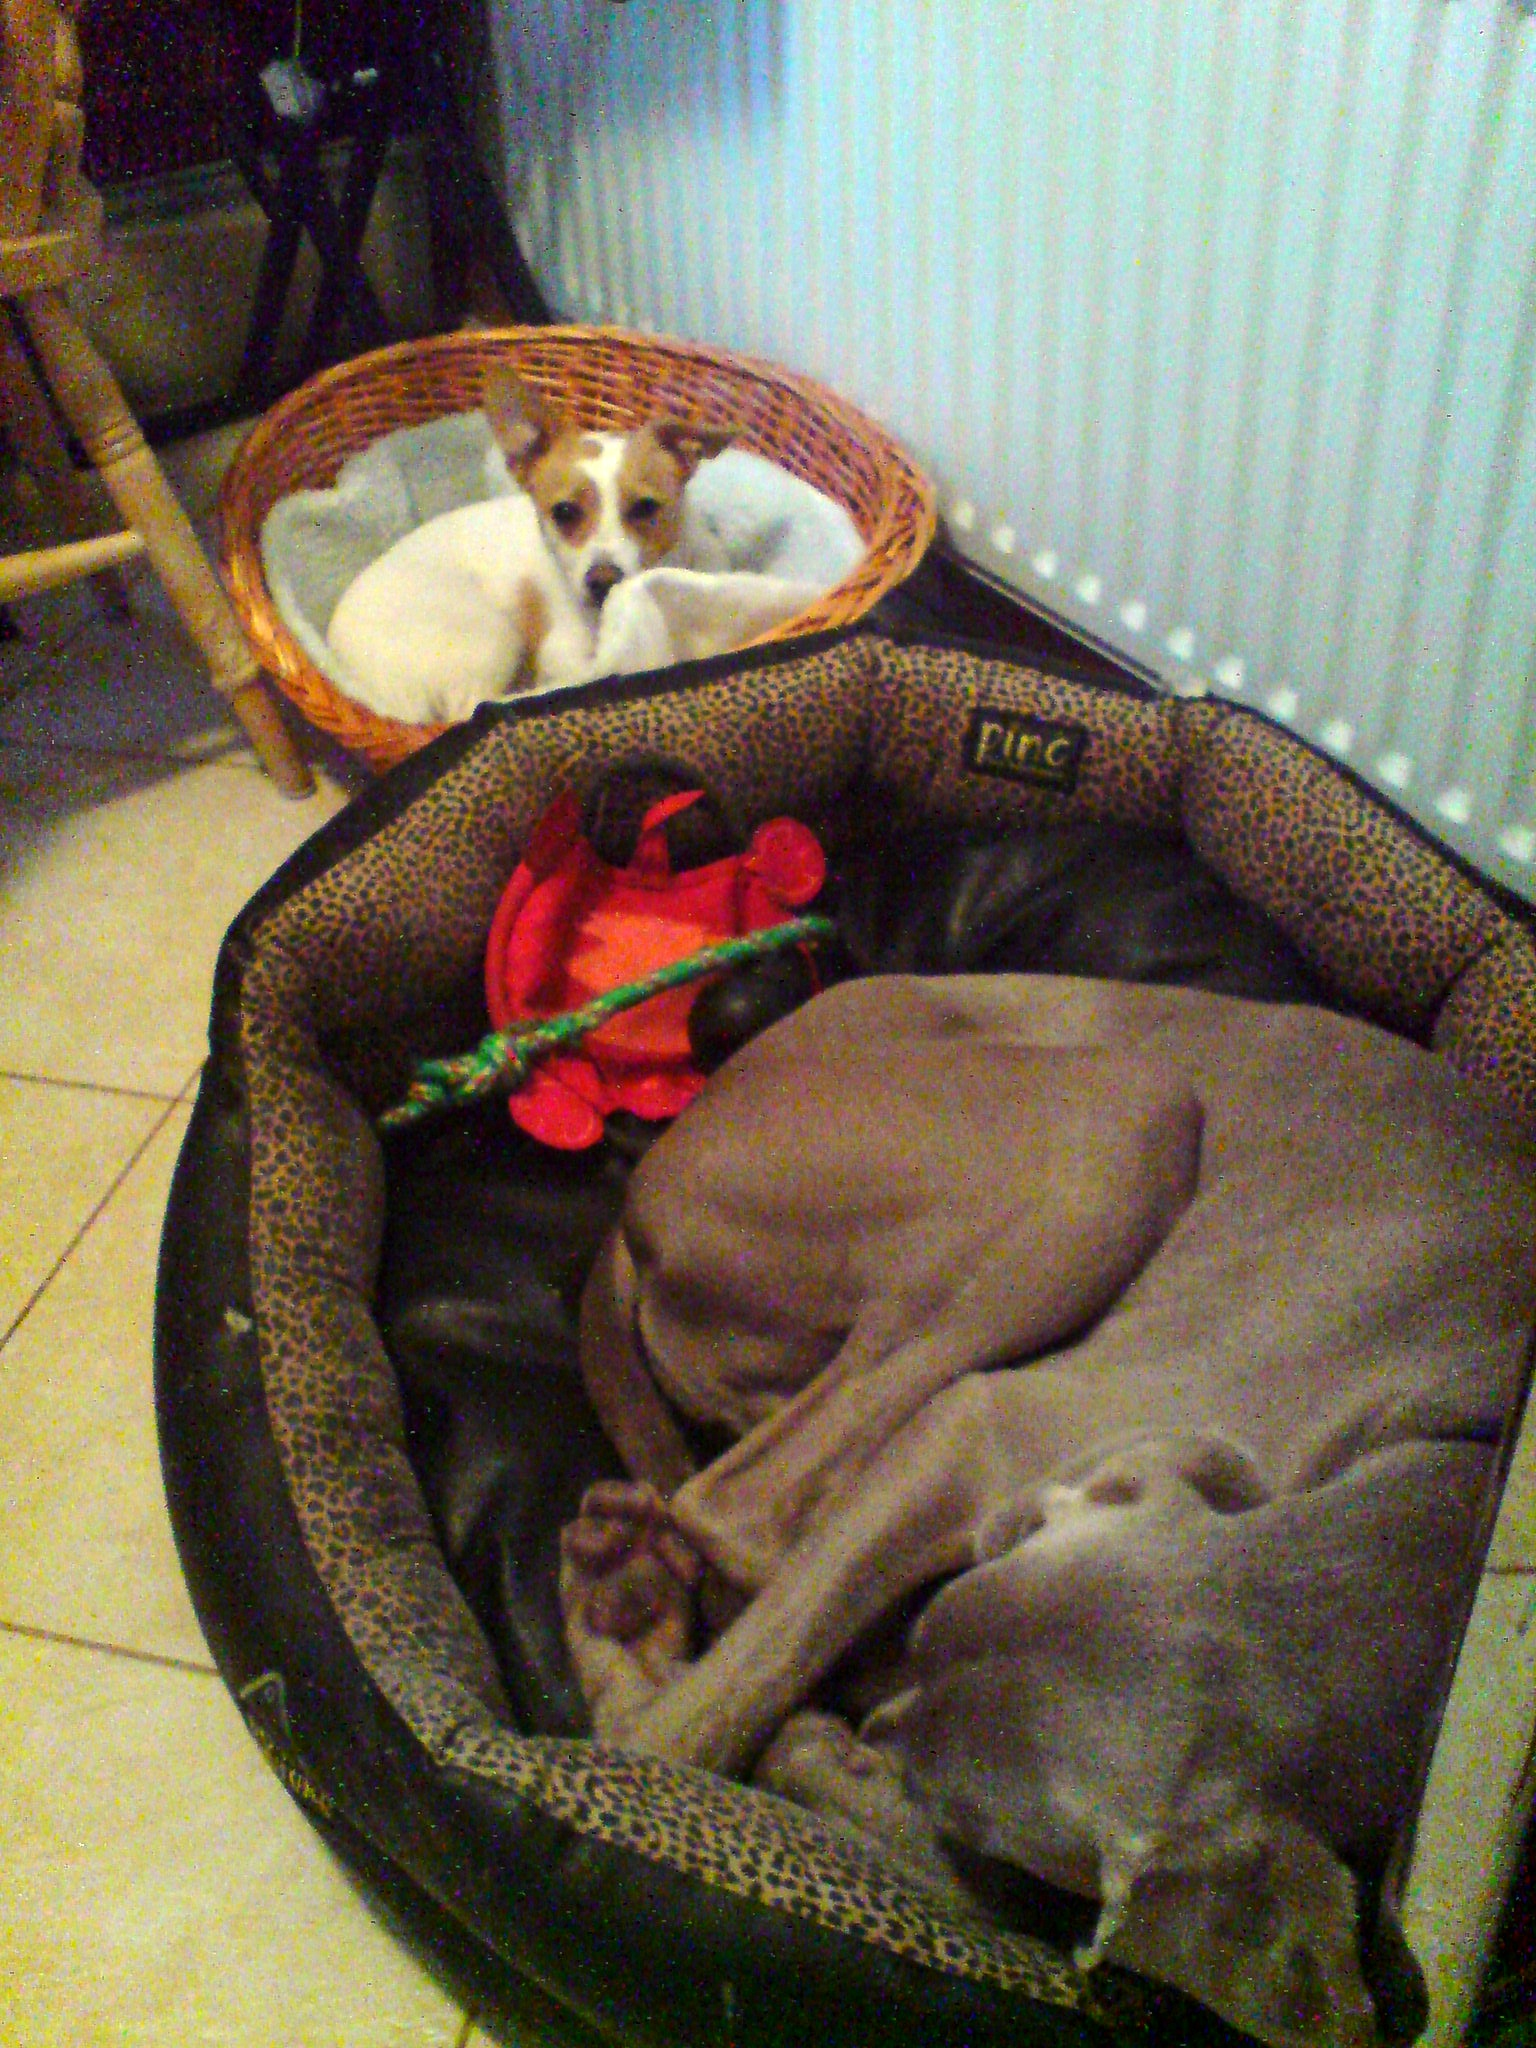 Mac and Max in their beds